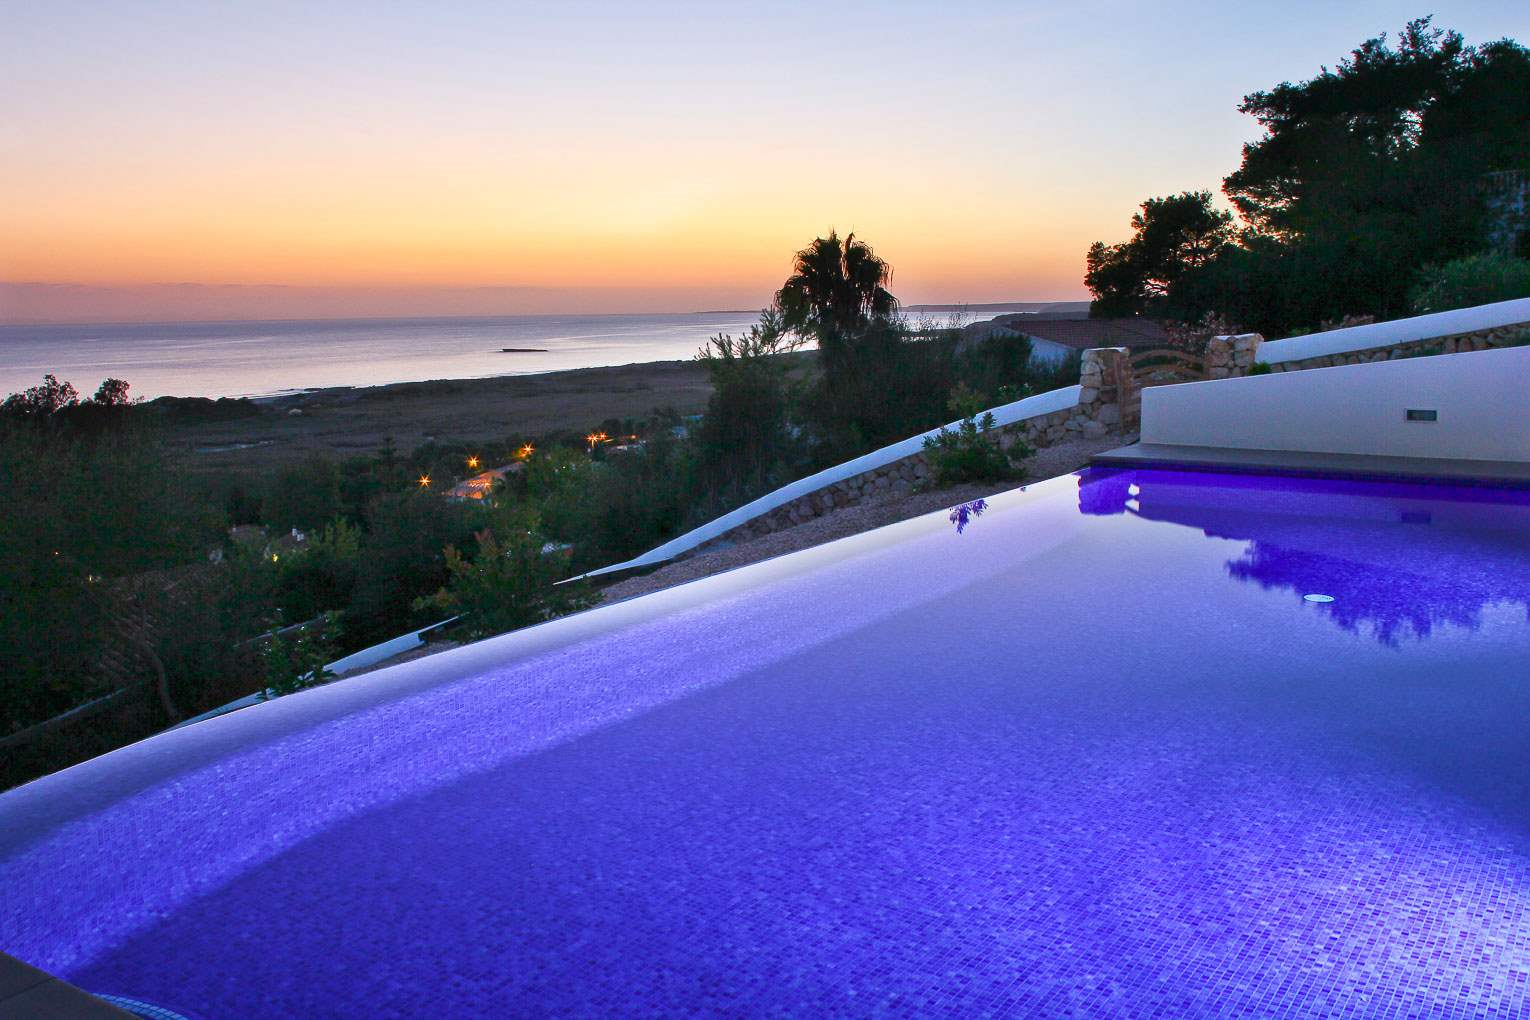 Villa Prestige, 5 bedroom villa in Son Bou & South, Menorca Photo #2